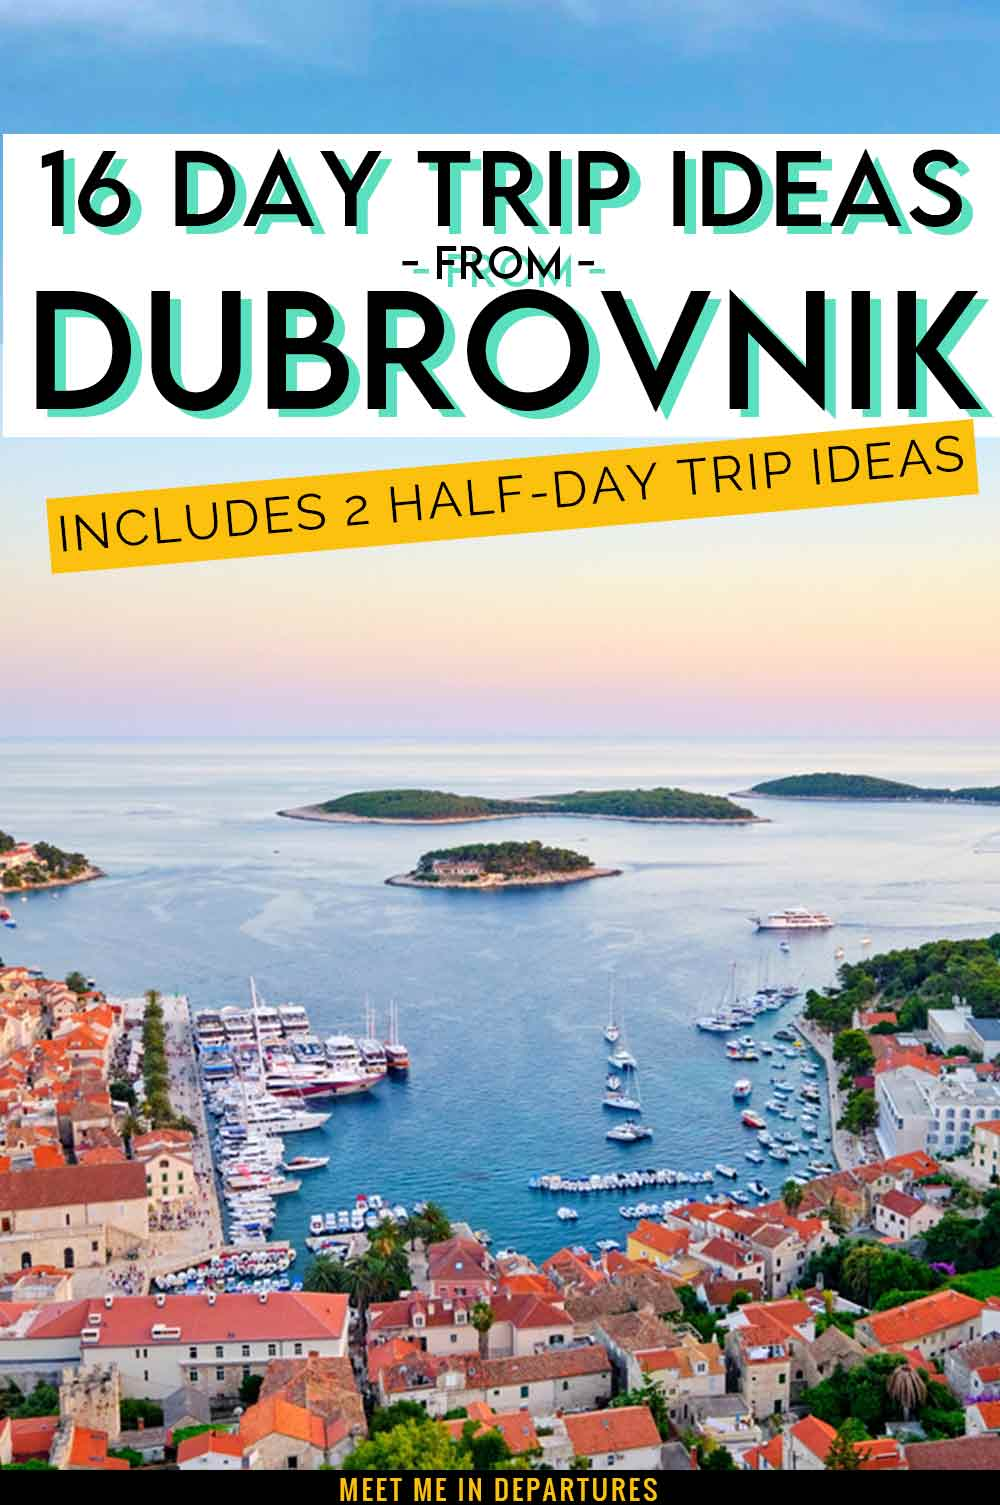 16 Outstanding Day Trips from Dubrovnik + 2 Half Day Dubrovnik Excursions 1